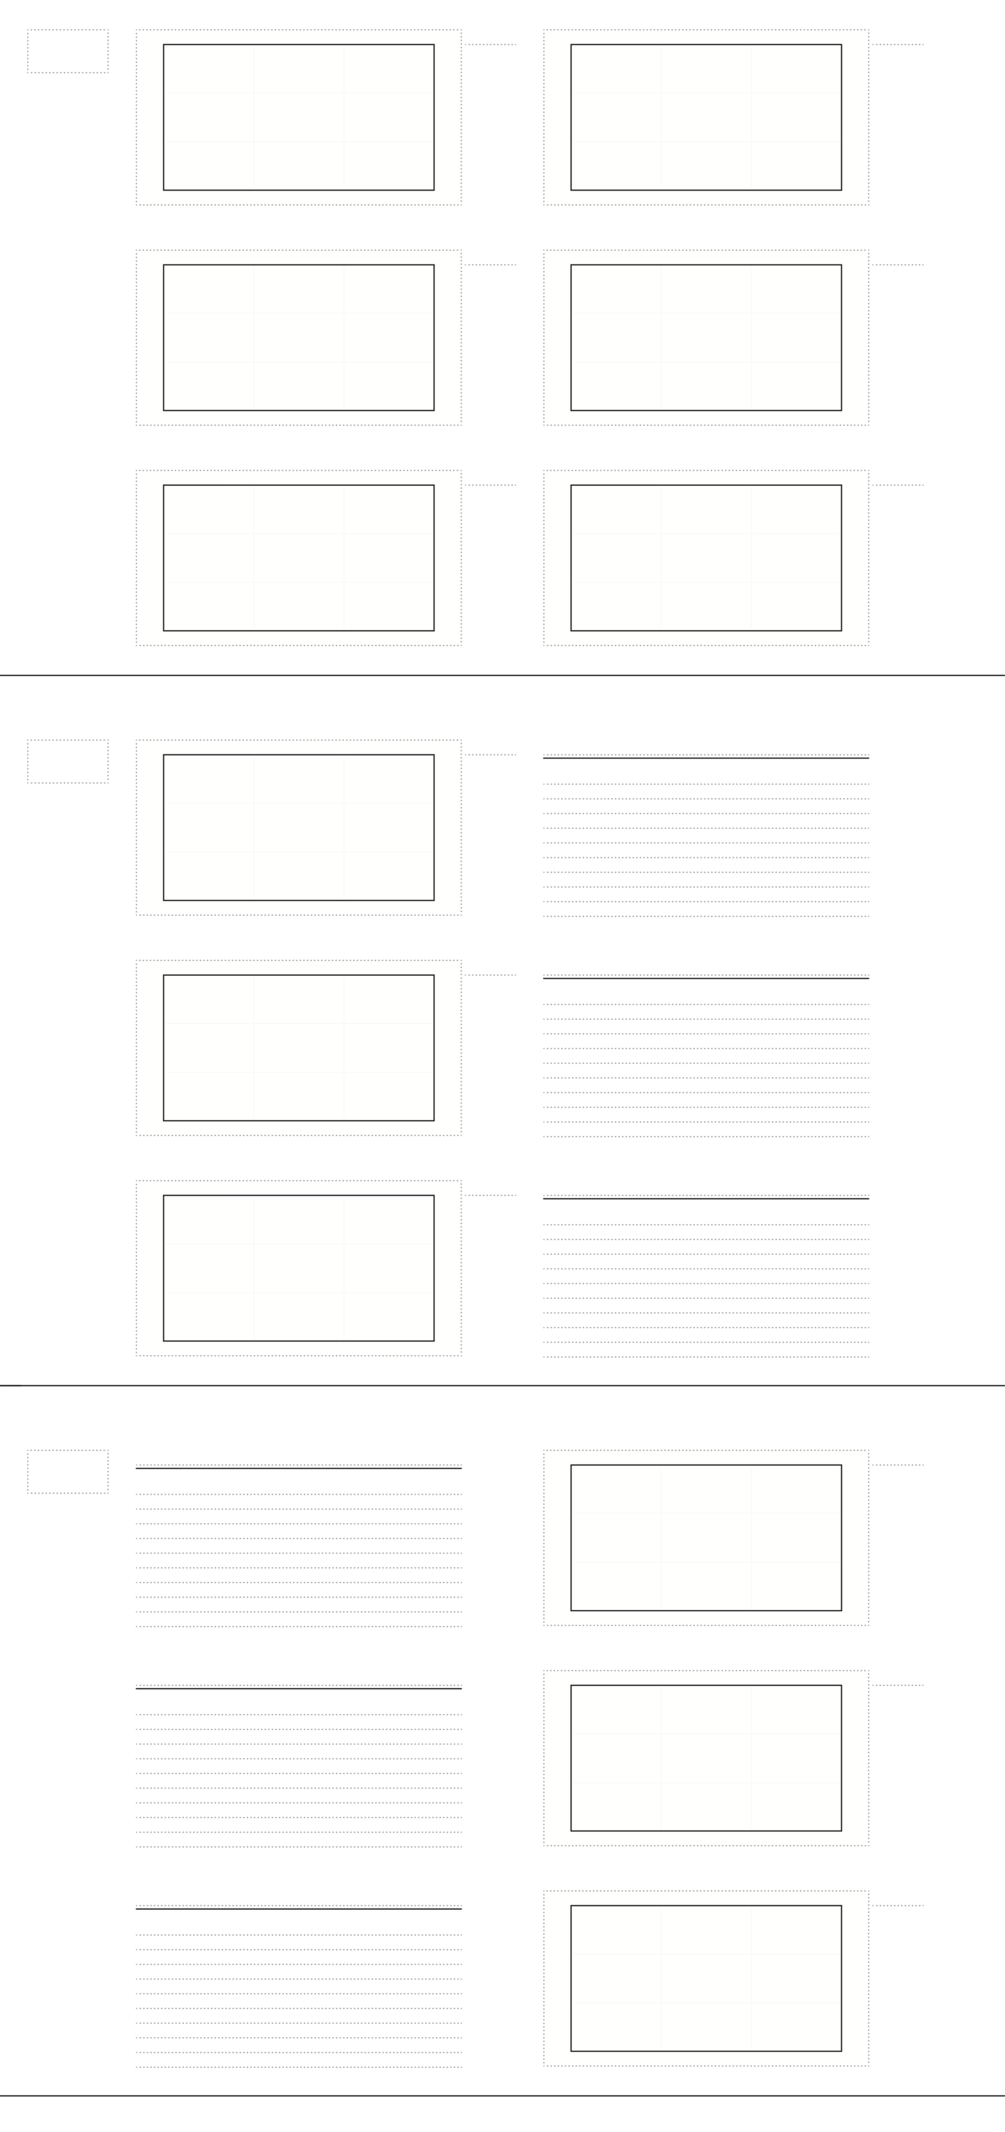 This Is A Free Pdf Storyboard Template For 1 85 Widescreen Aspect Ratio Frames Ready To Print You Just Need Fill It In With Drawings And Notes